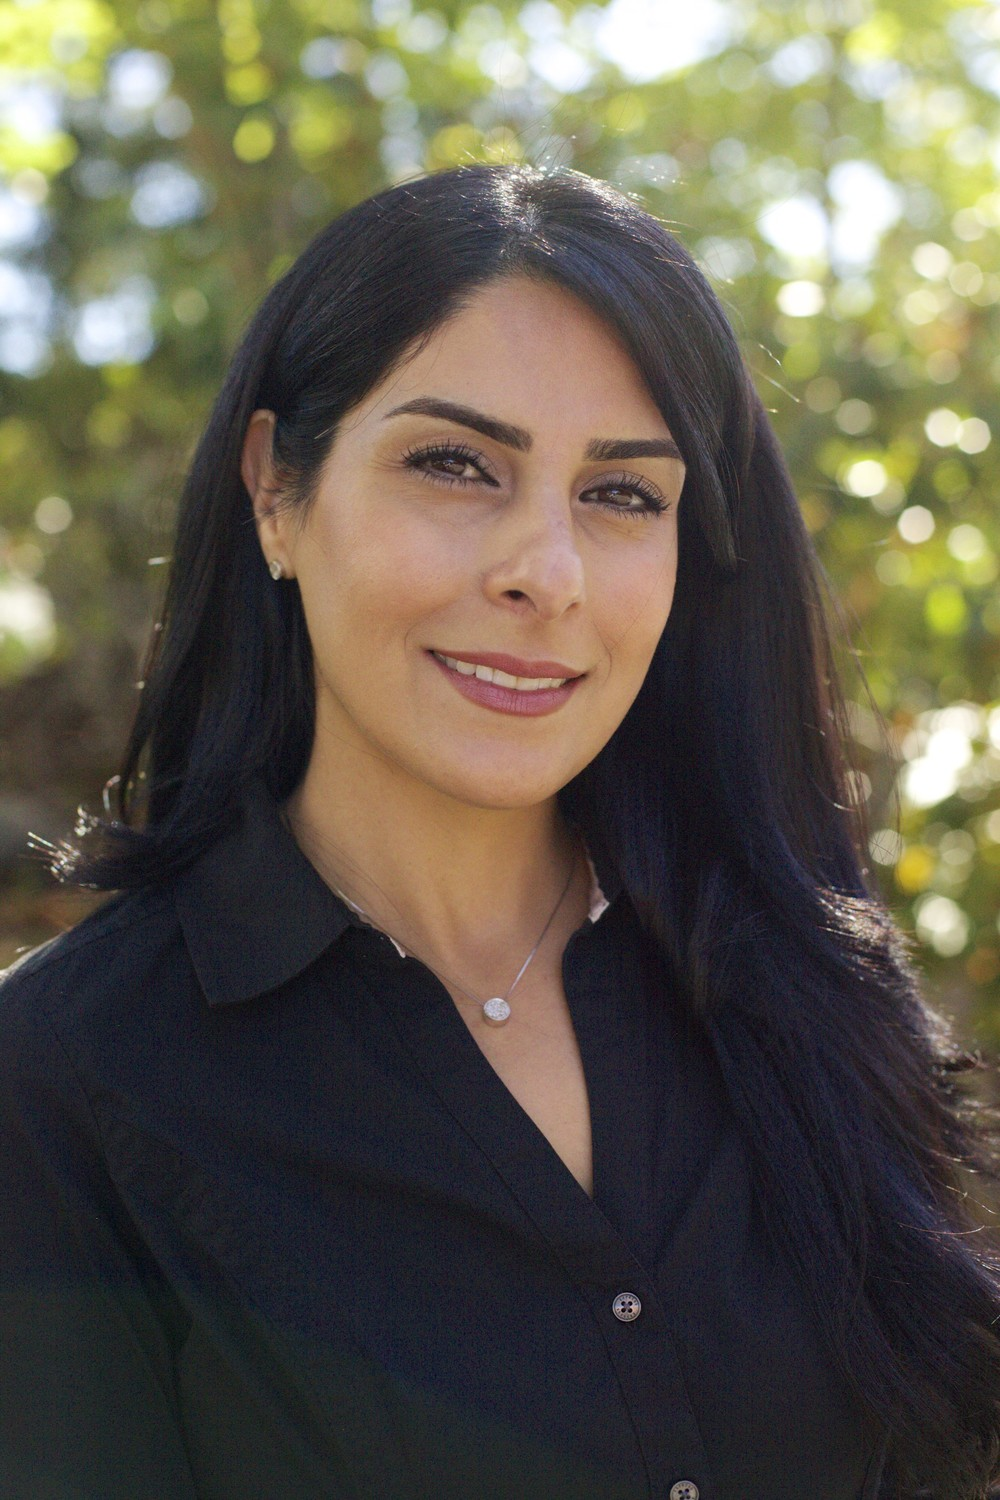 Shadi Shirazi, PsyD, LIcensed psychologist ∙ Children, Adolescents and Young Adults, ages 2 and up ∙ Intake evaluations ∙ Psychological Testing ∙ Autism Testing ∙ College Accommodation Testing ∙ Academic Accommodation and IEP related testing